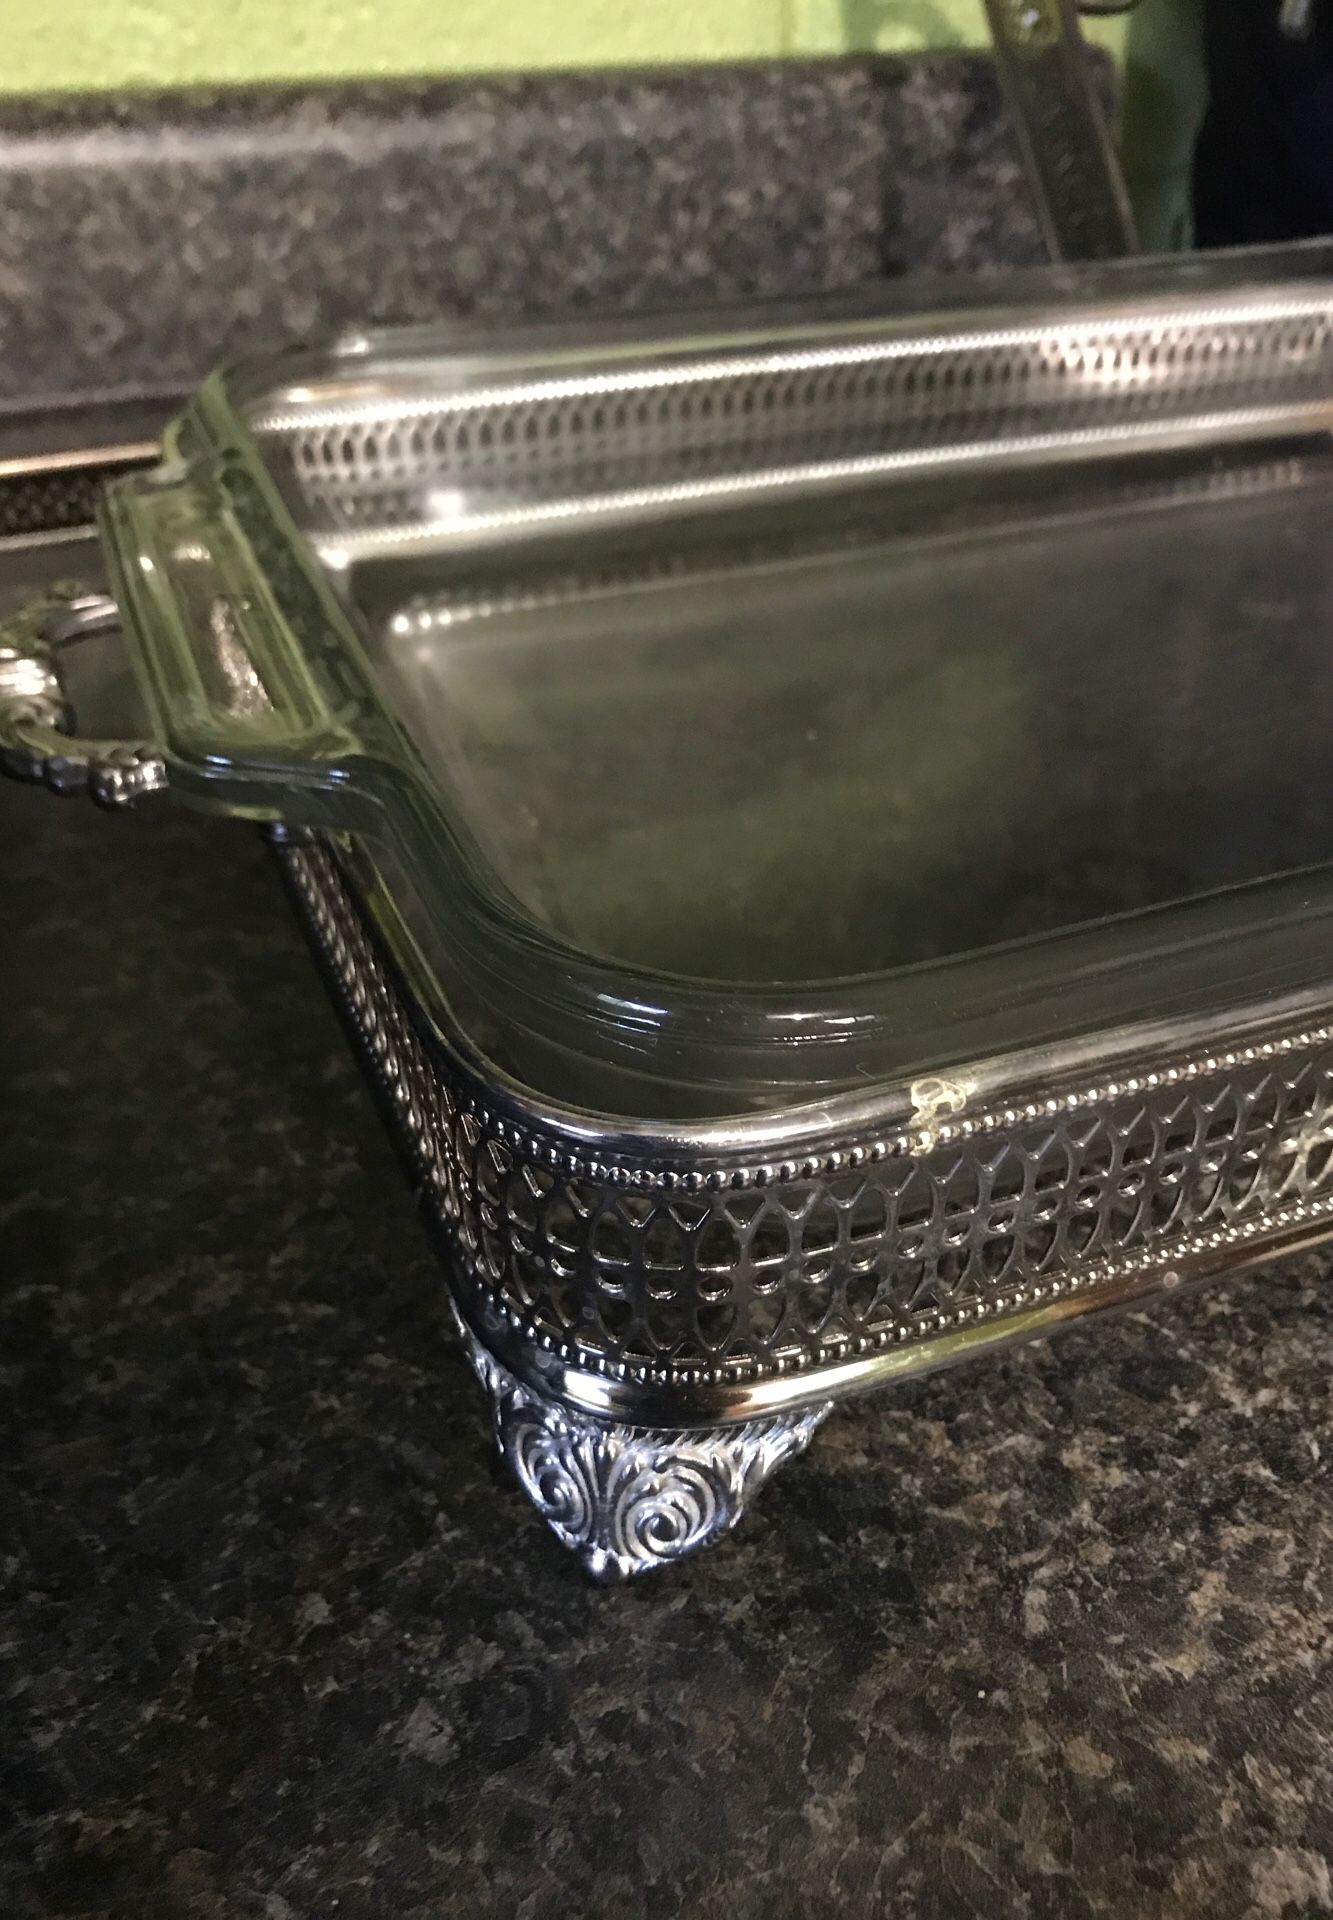 Towle appliances/ serving dishes